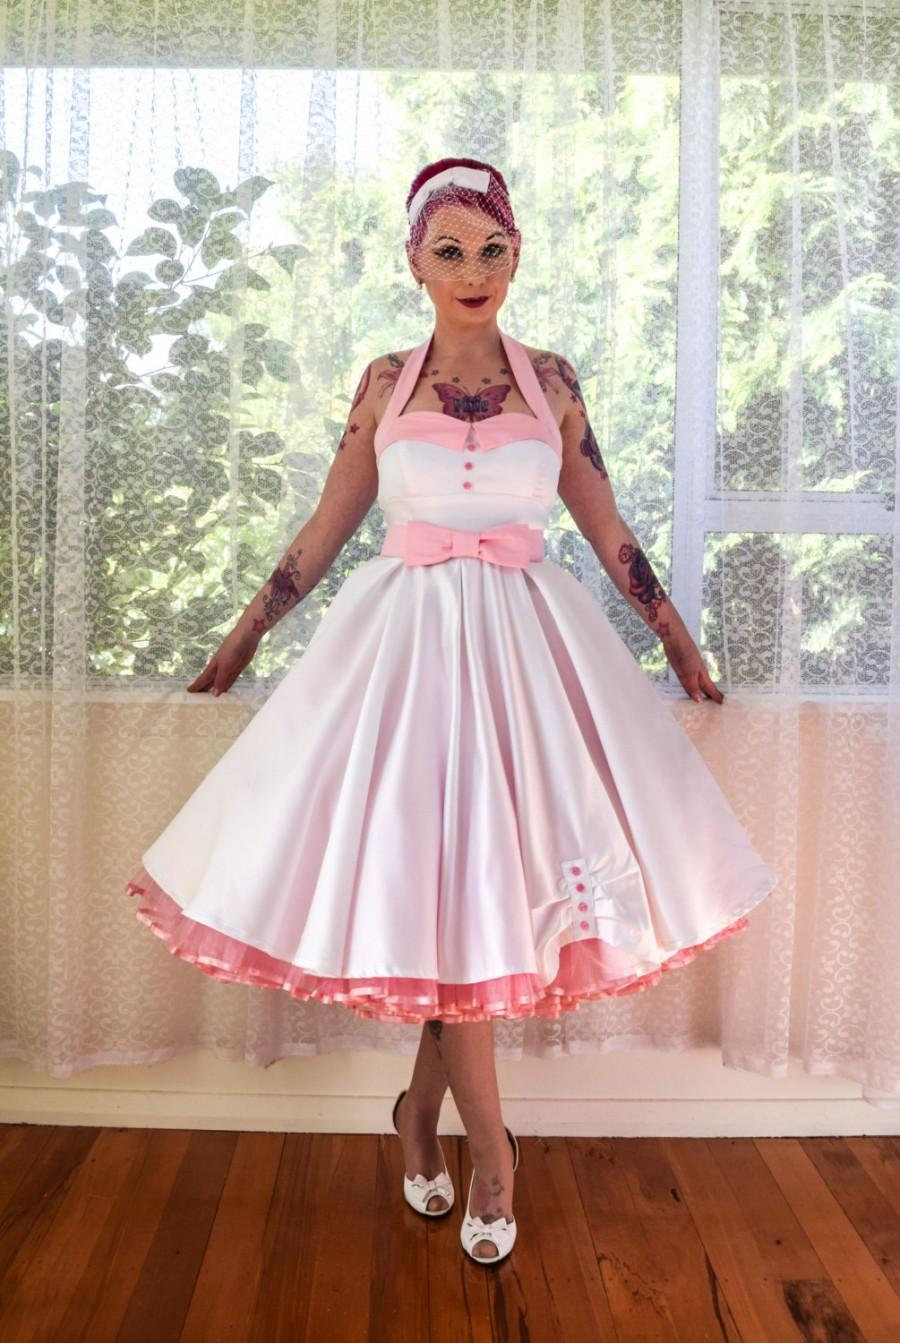 Düğün - 1950's Rockabilly 'Ruby' Wedding Dress with Lapels, Sash, Full Circle Tea Length Skirt and Petticoat - Custom Made to Fit